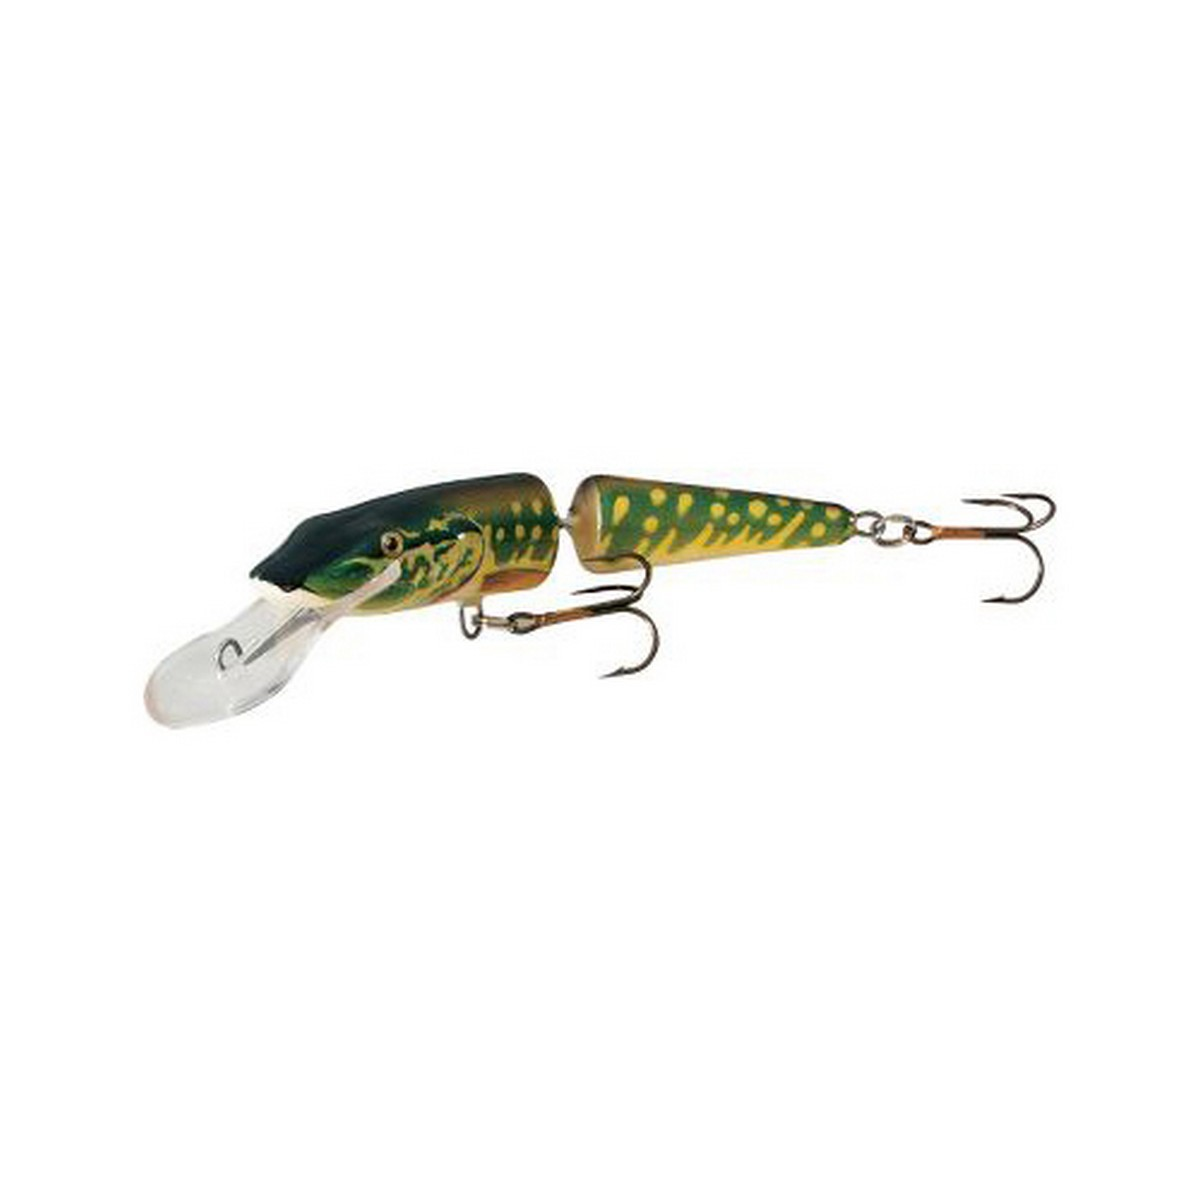 Воблер Salmo Pike Jointed Floating - чупещ, 13cm